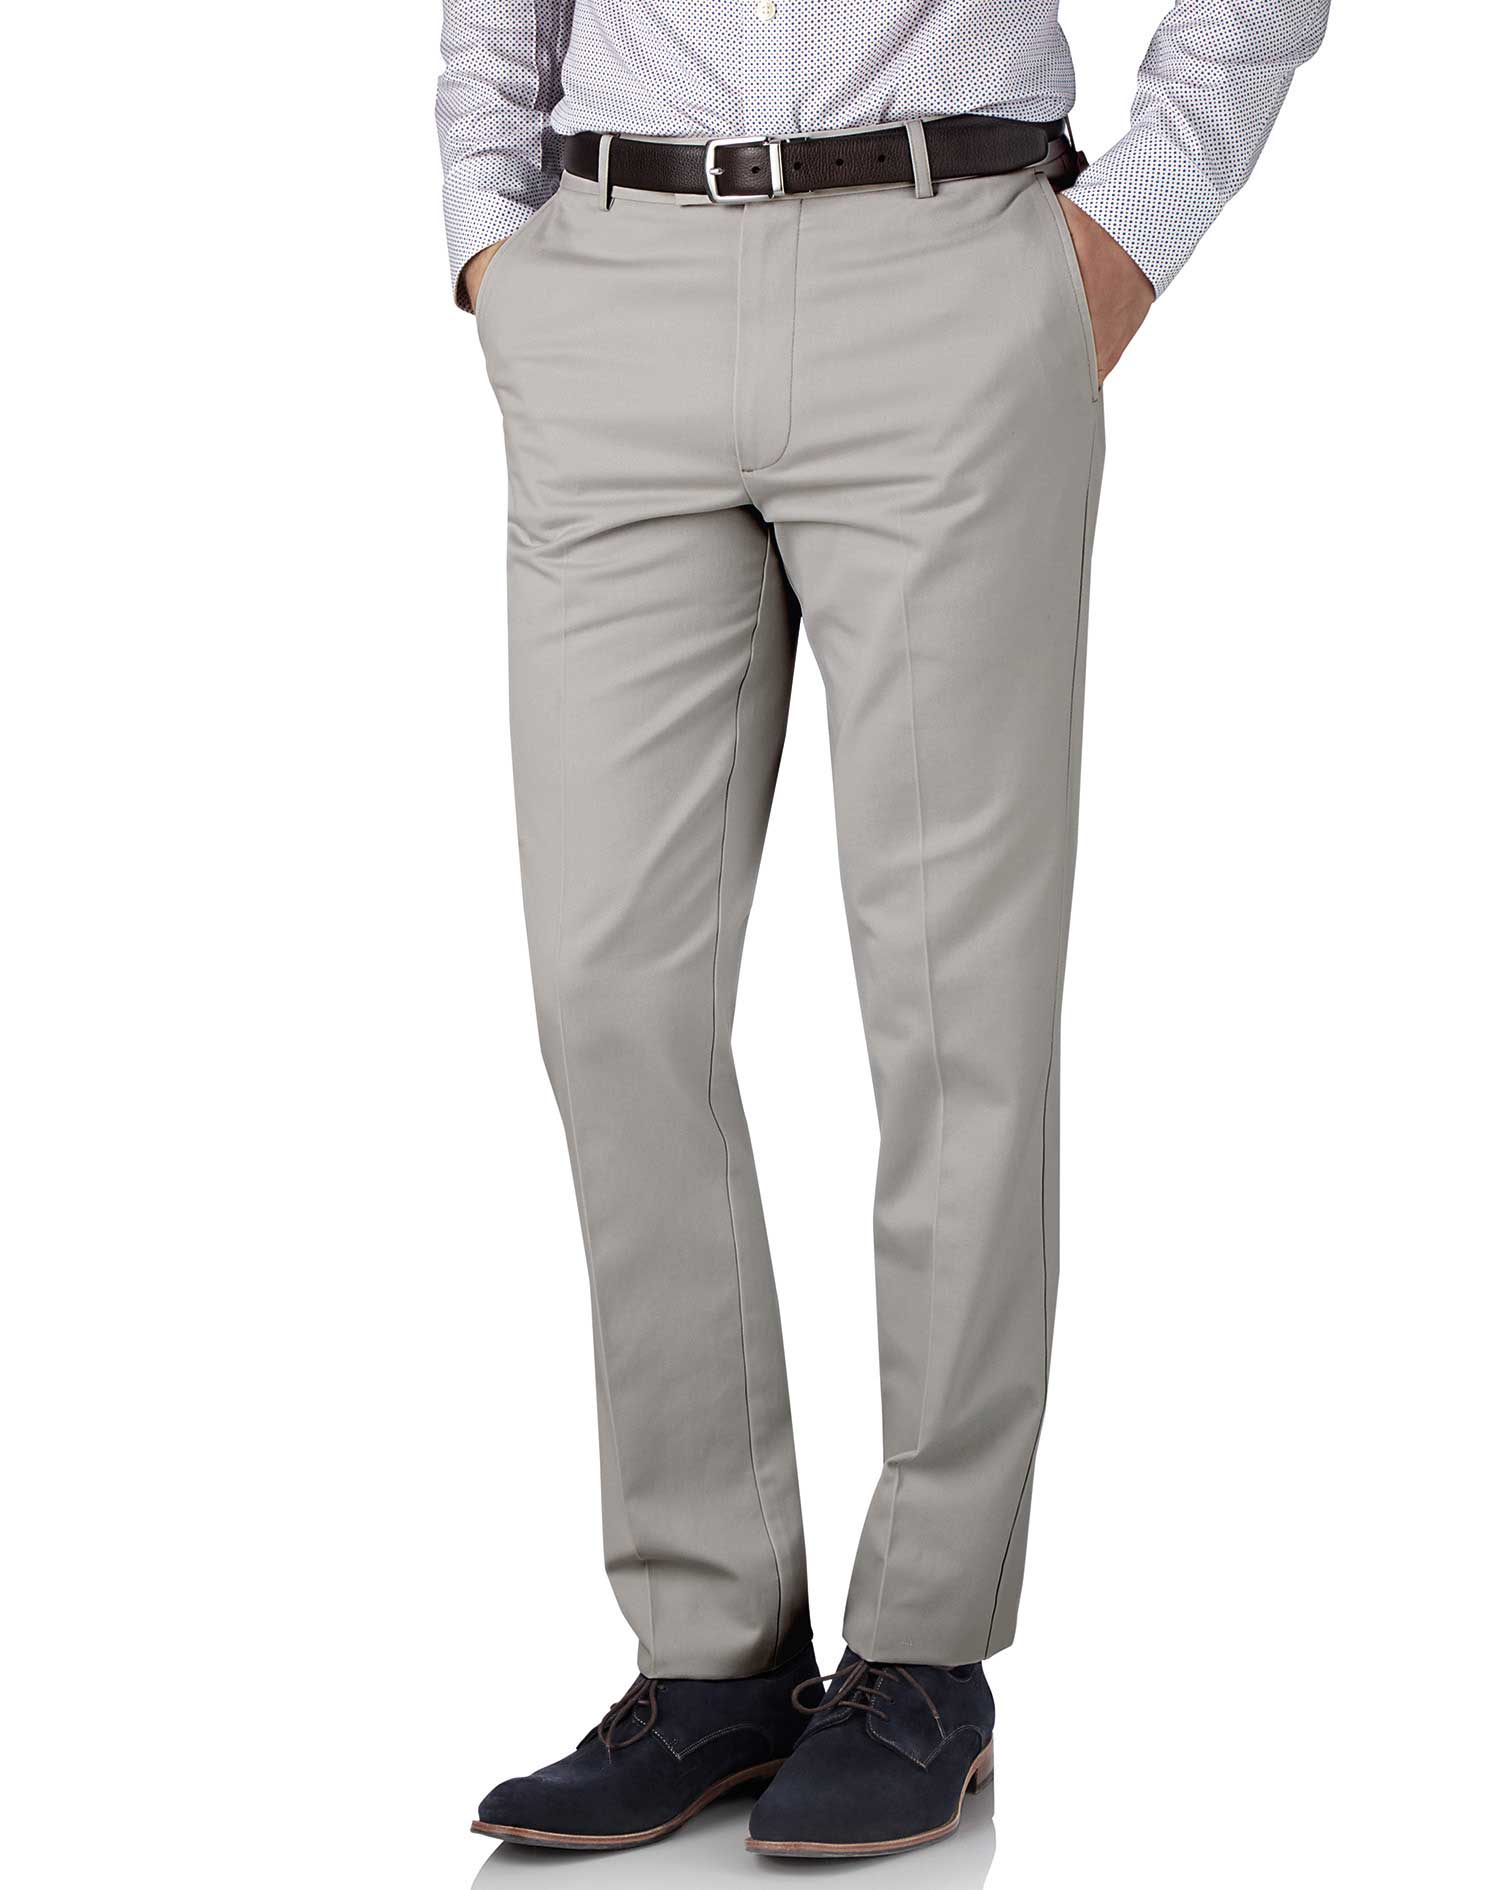 Silver Grey Slim Fit Flat Front Non-Iron Cotton Chino Trousers Size W32 L30 by Charles Tyrwhitt